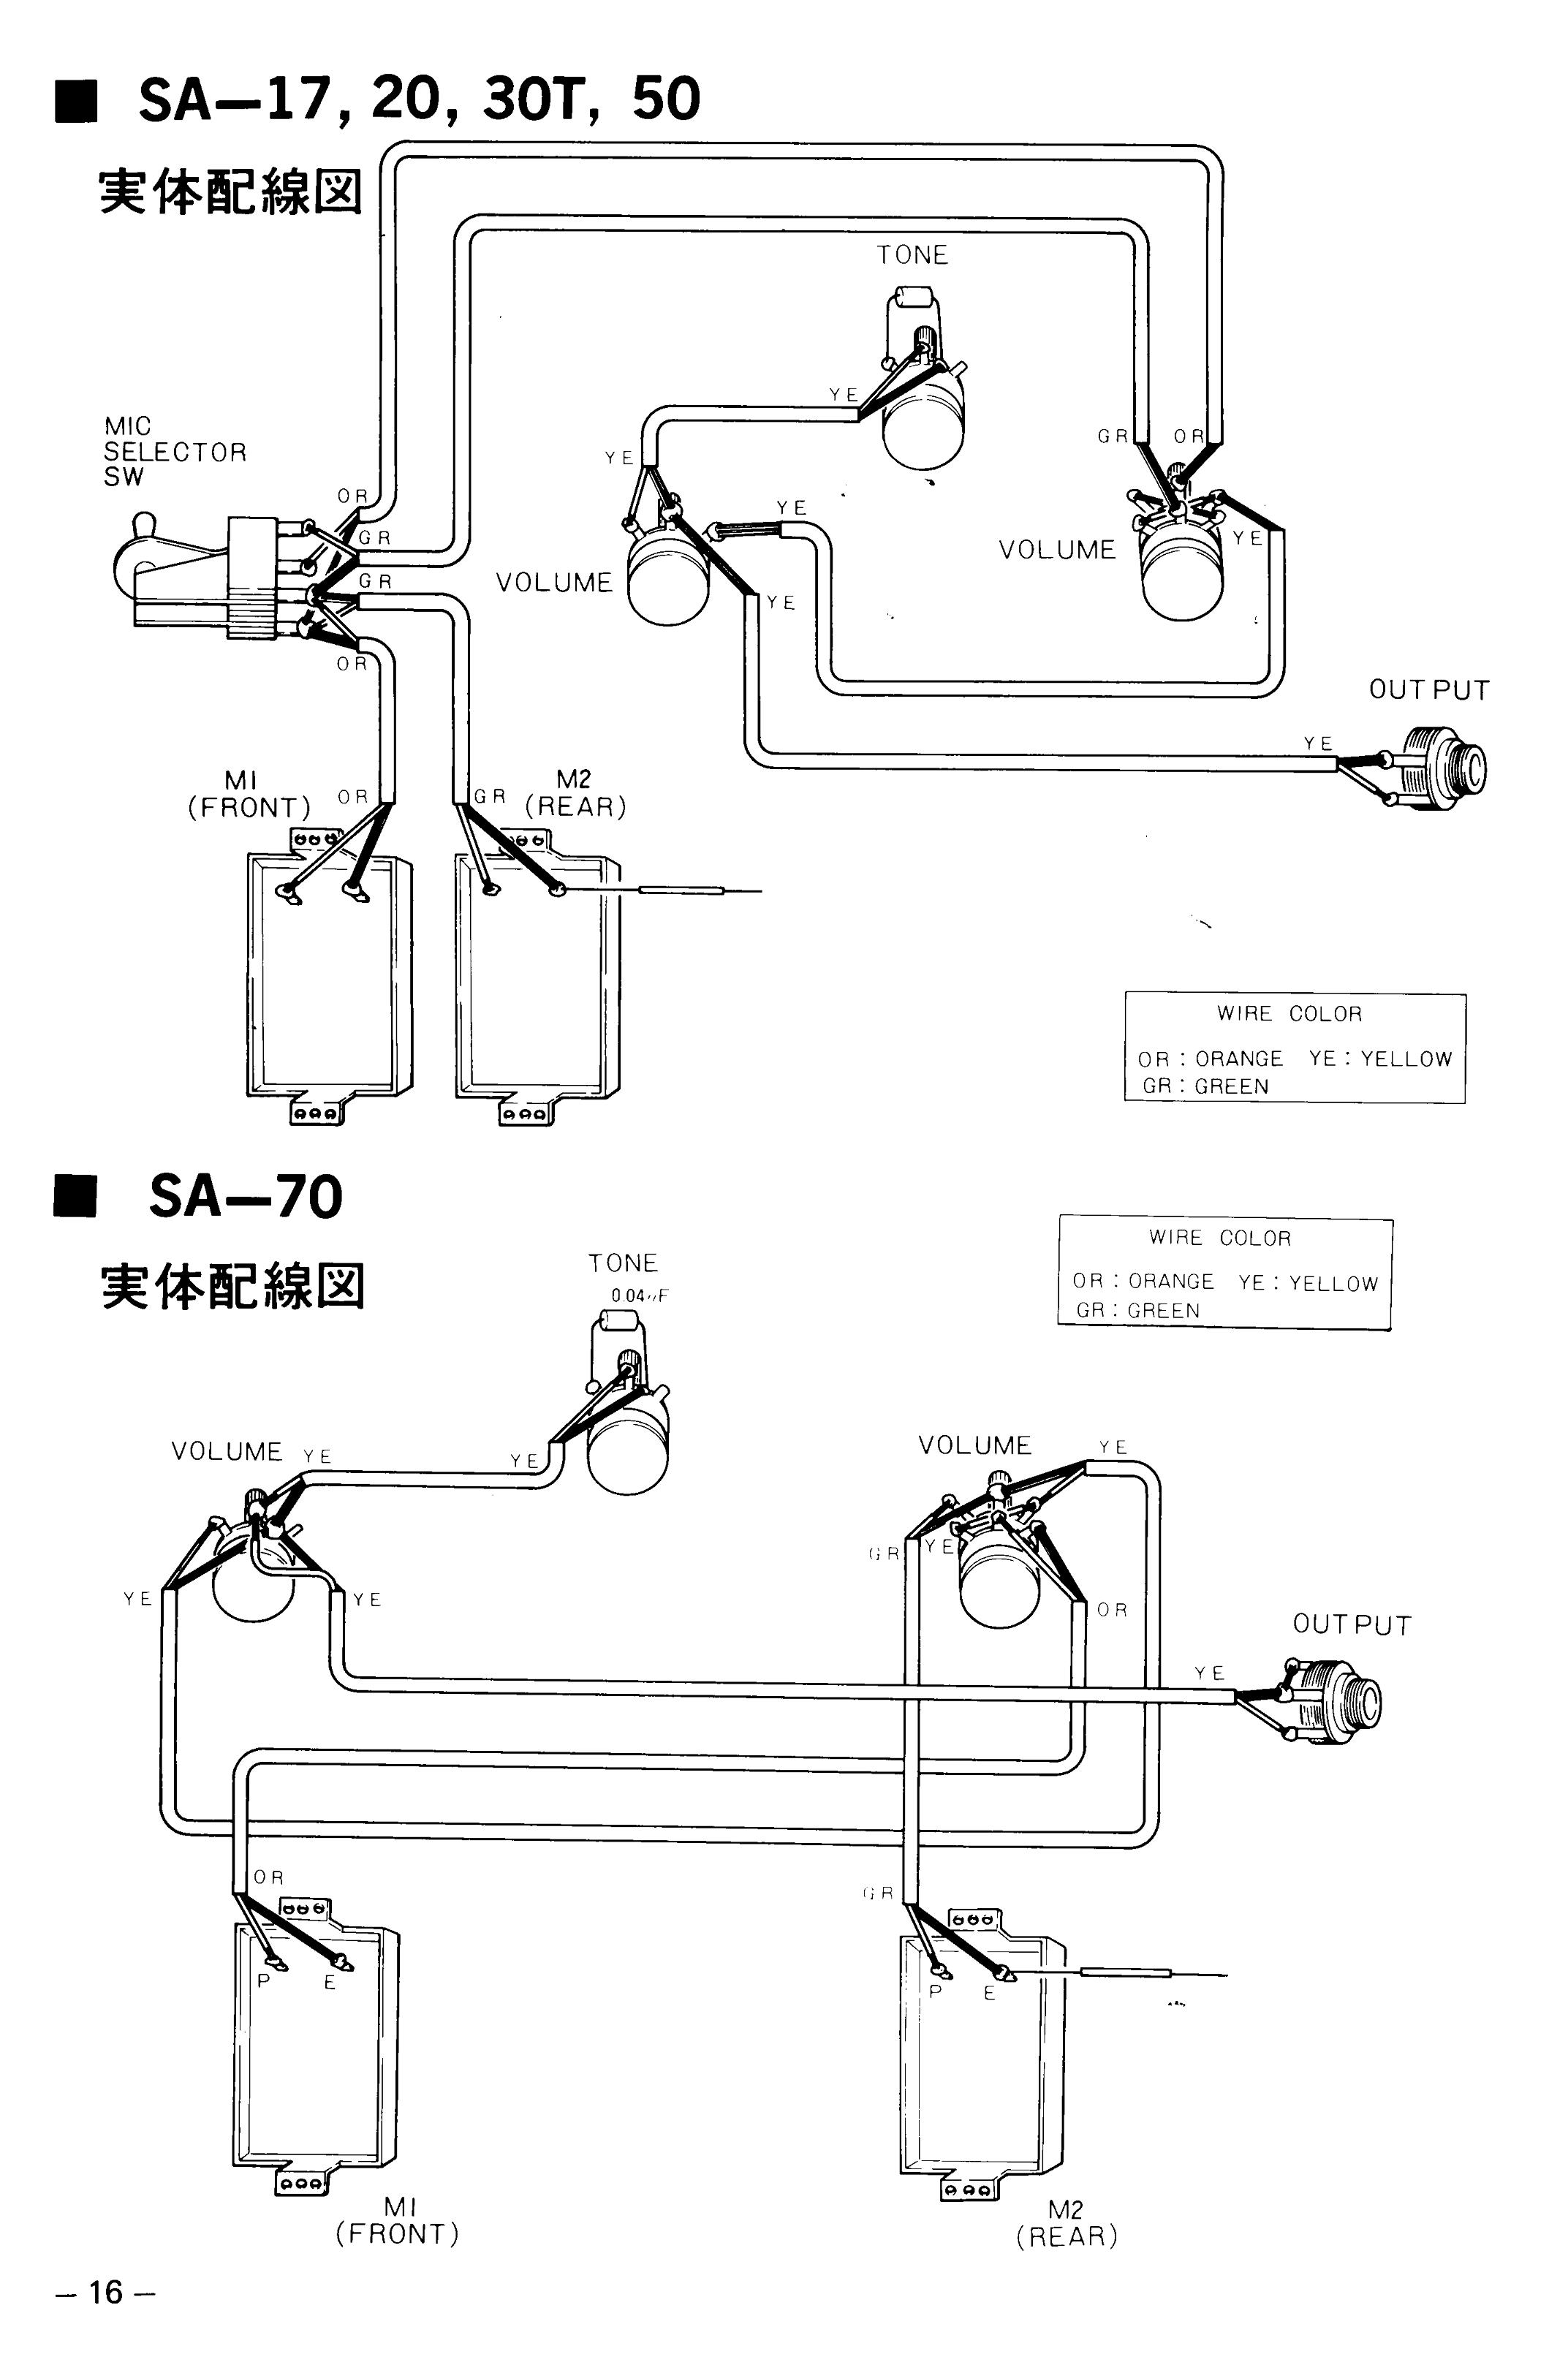 Old Fashioned Yamaha Aerox Wiring Diagram Image Collection - Best ...